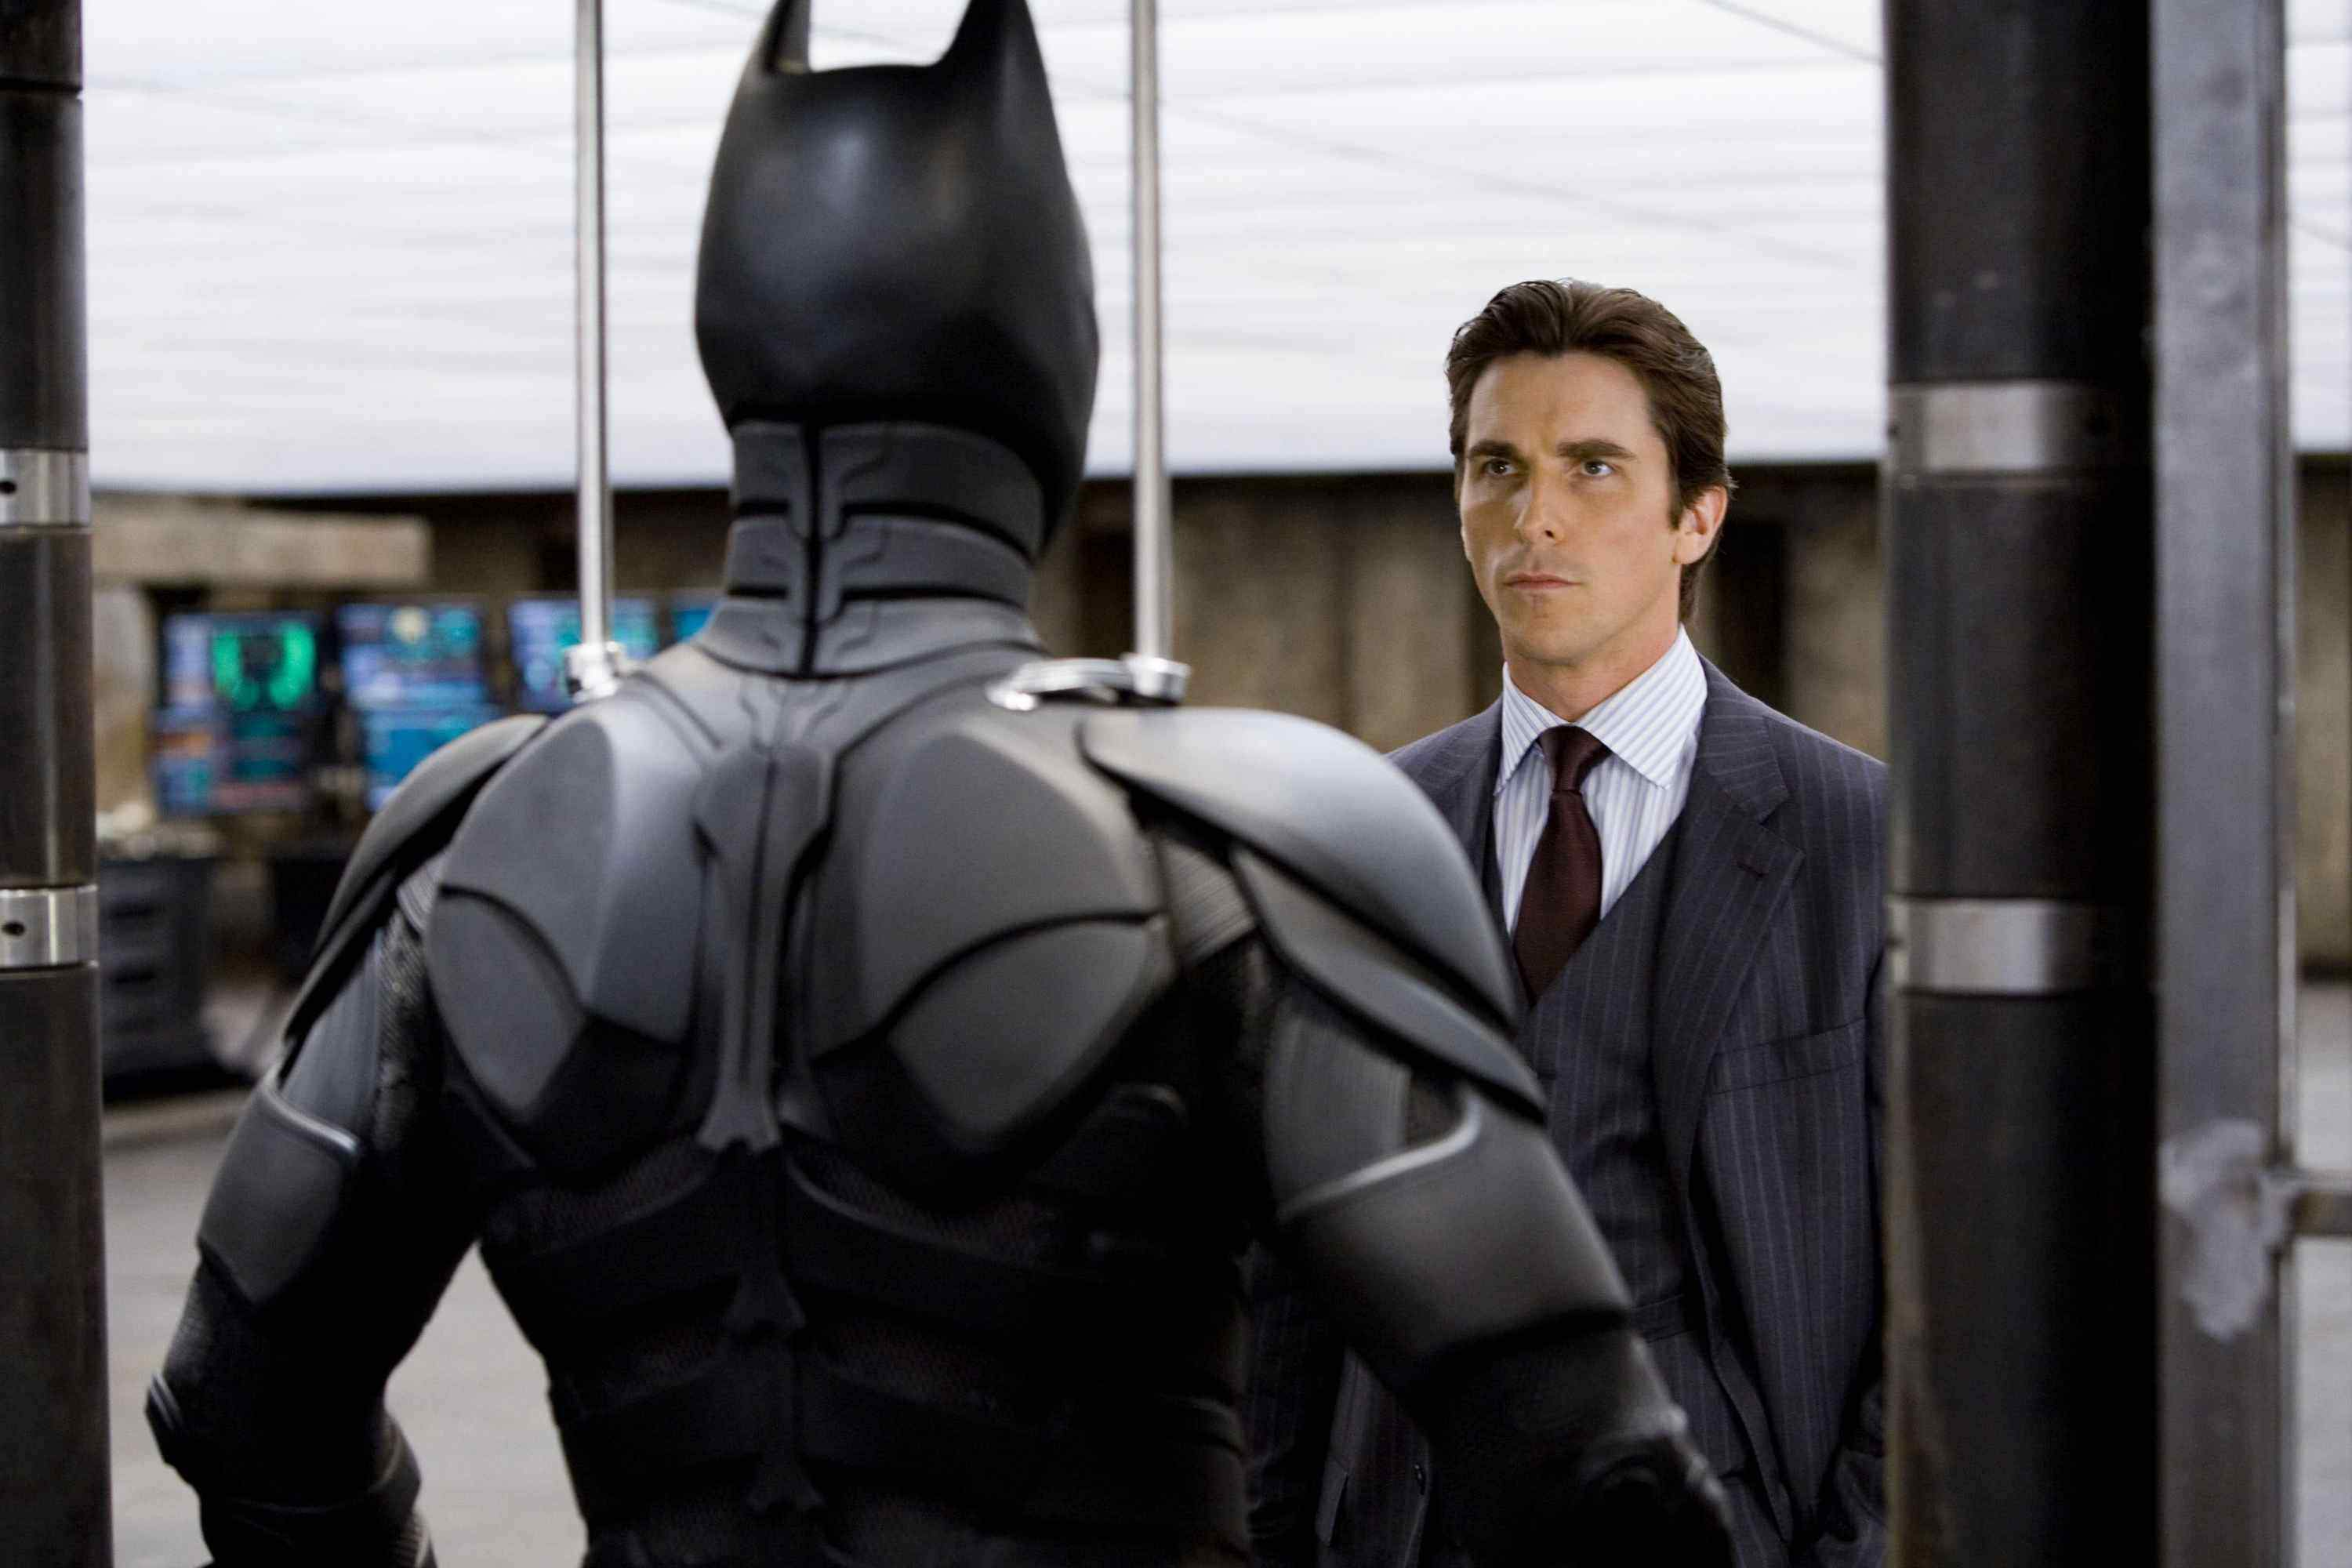 CHRISTIAN BALE stars as Bruce Wayne in Warner Bros. Pictures' and Legendary Pictures' action drama